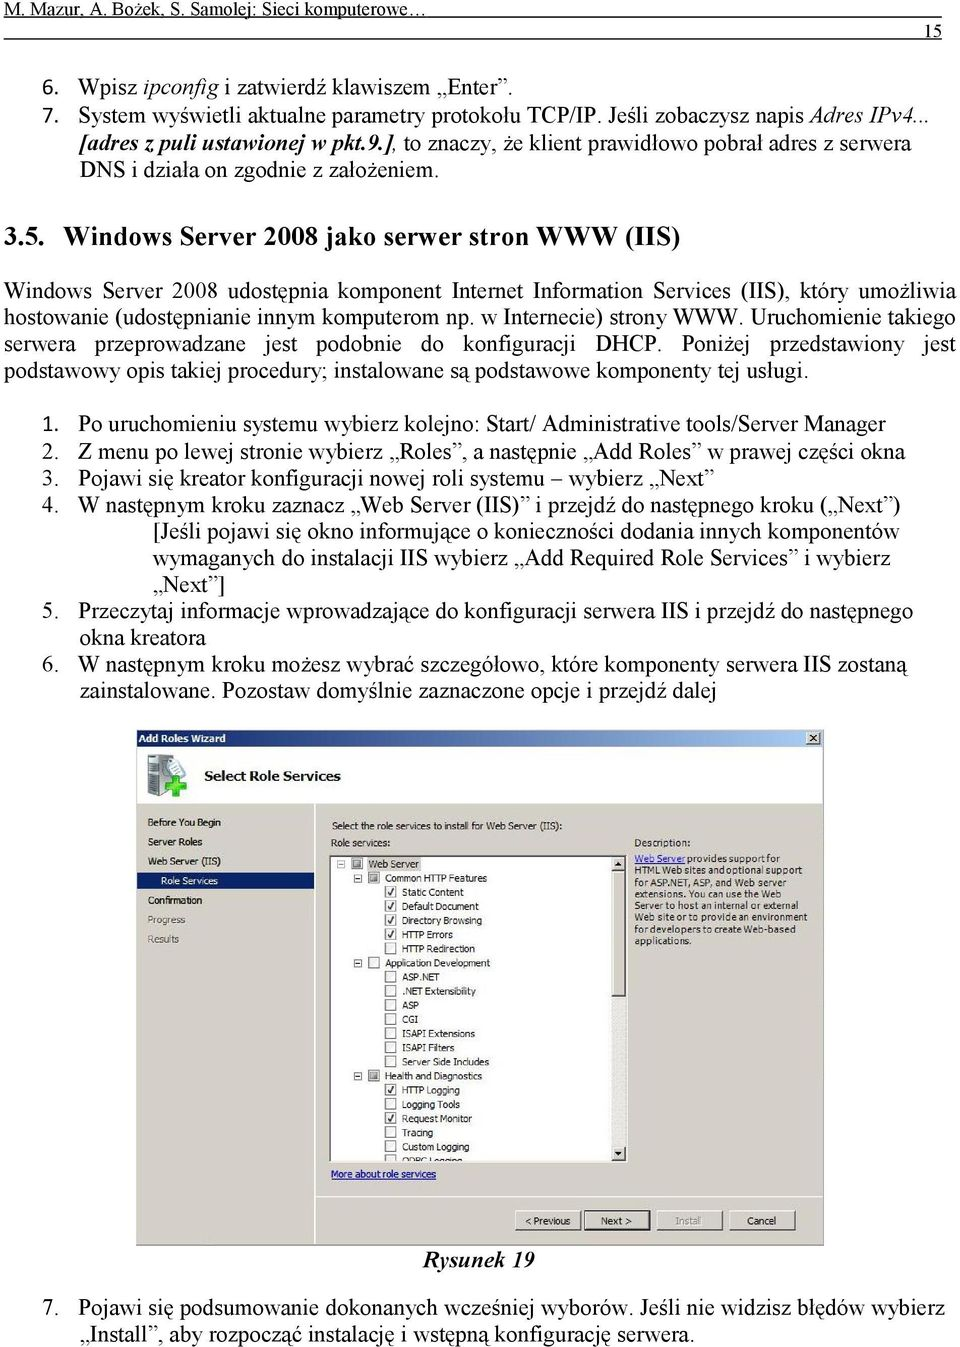 Windows Server 2008 jako serwer stron WWW (IIS) Windows Server 2008 udostępnia komponent Internet Information Services (IIS), który umożliwia hostowanie (udostępnianie innym komputerom np.